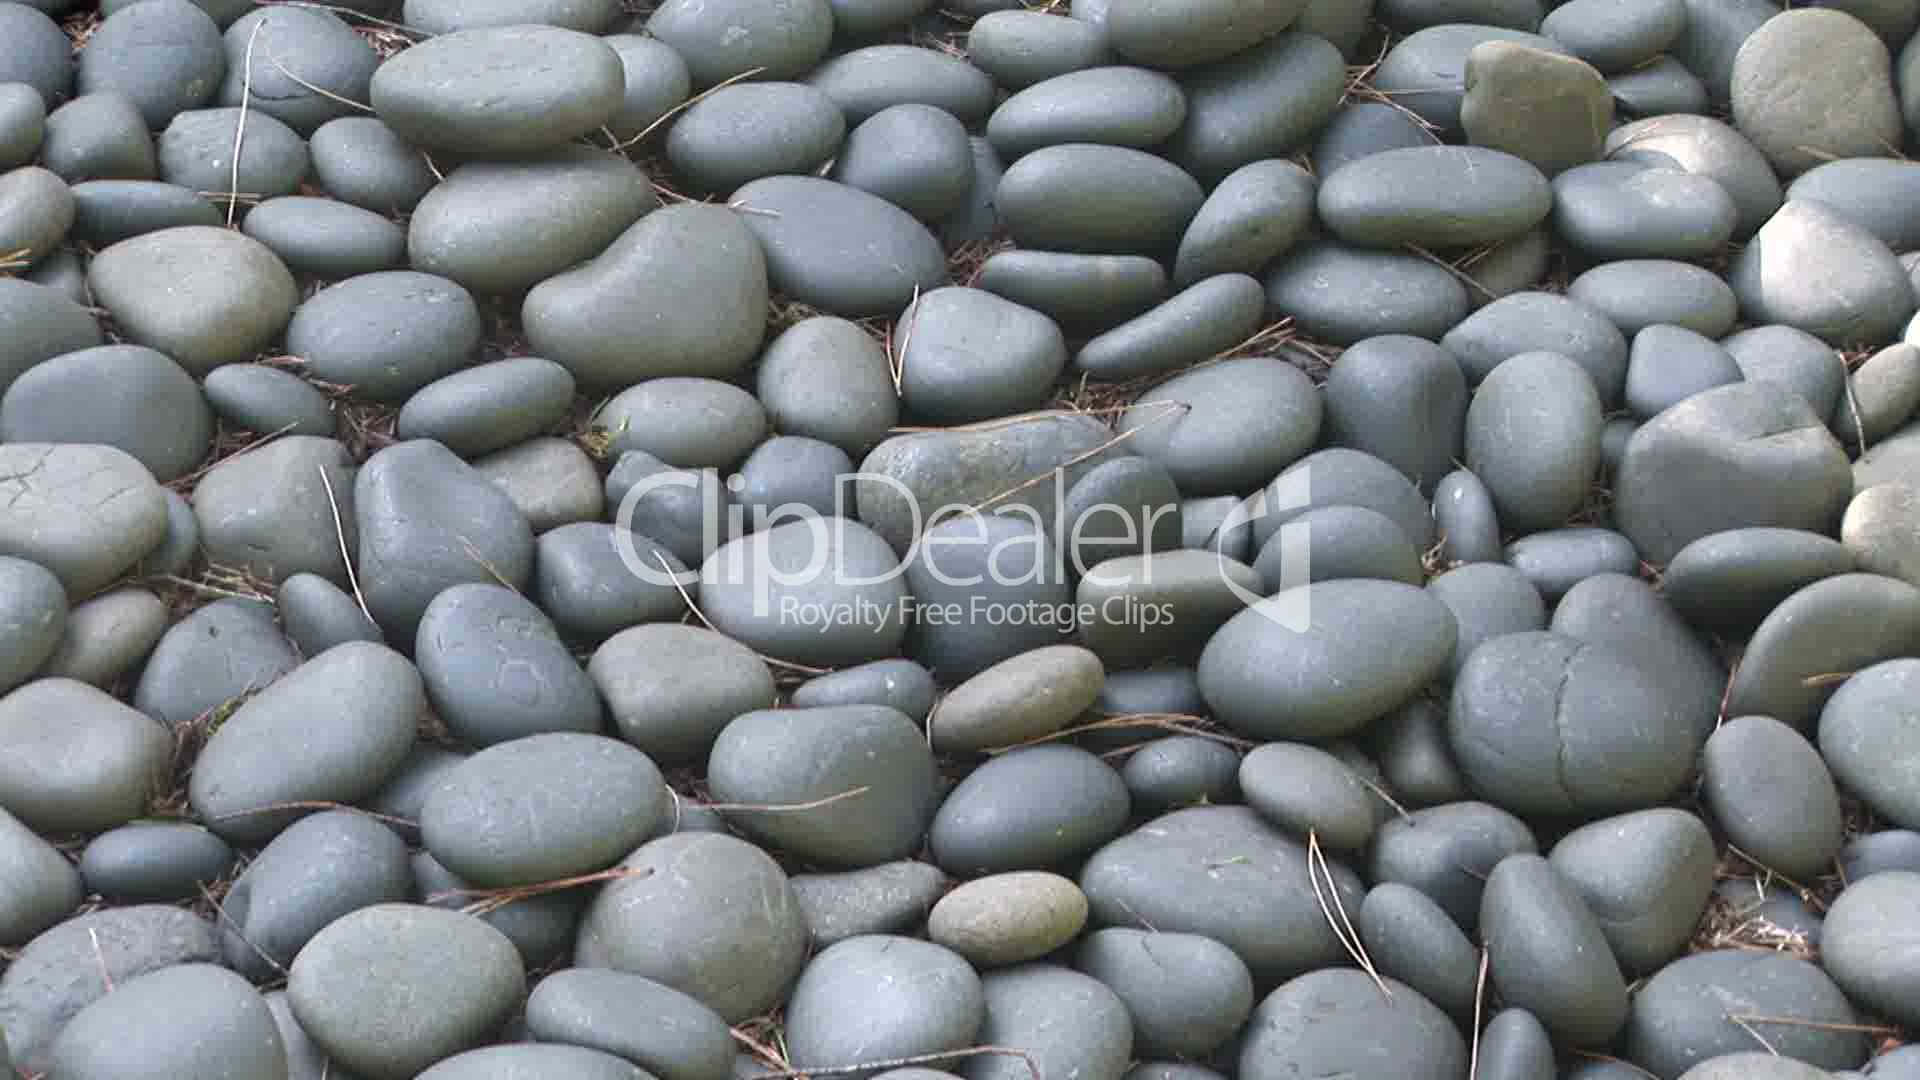 River Rocks: Royalty-free video and stock footage